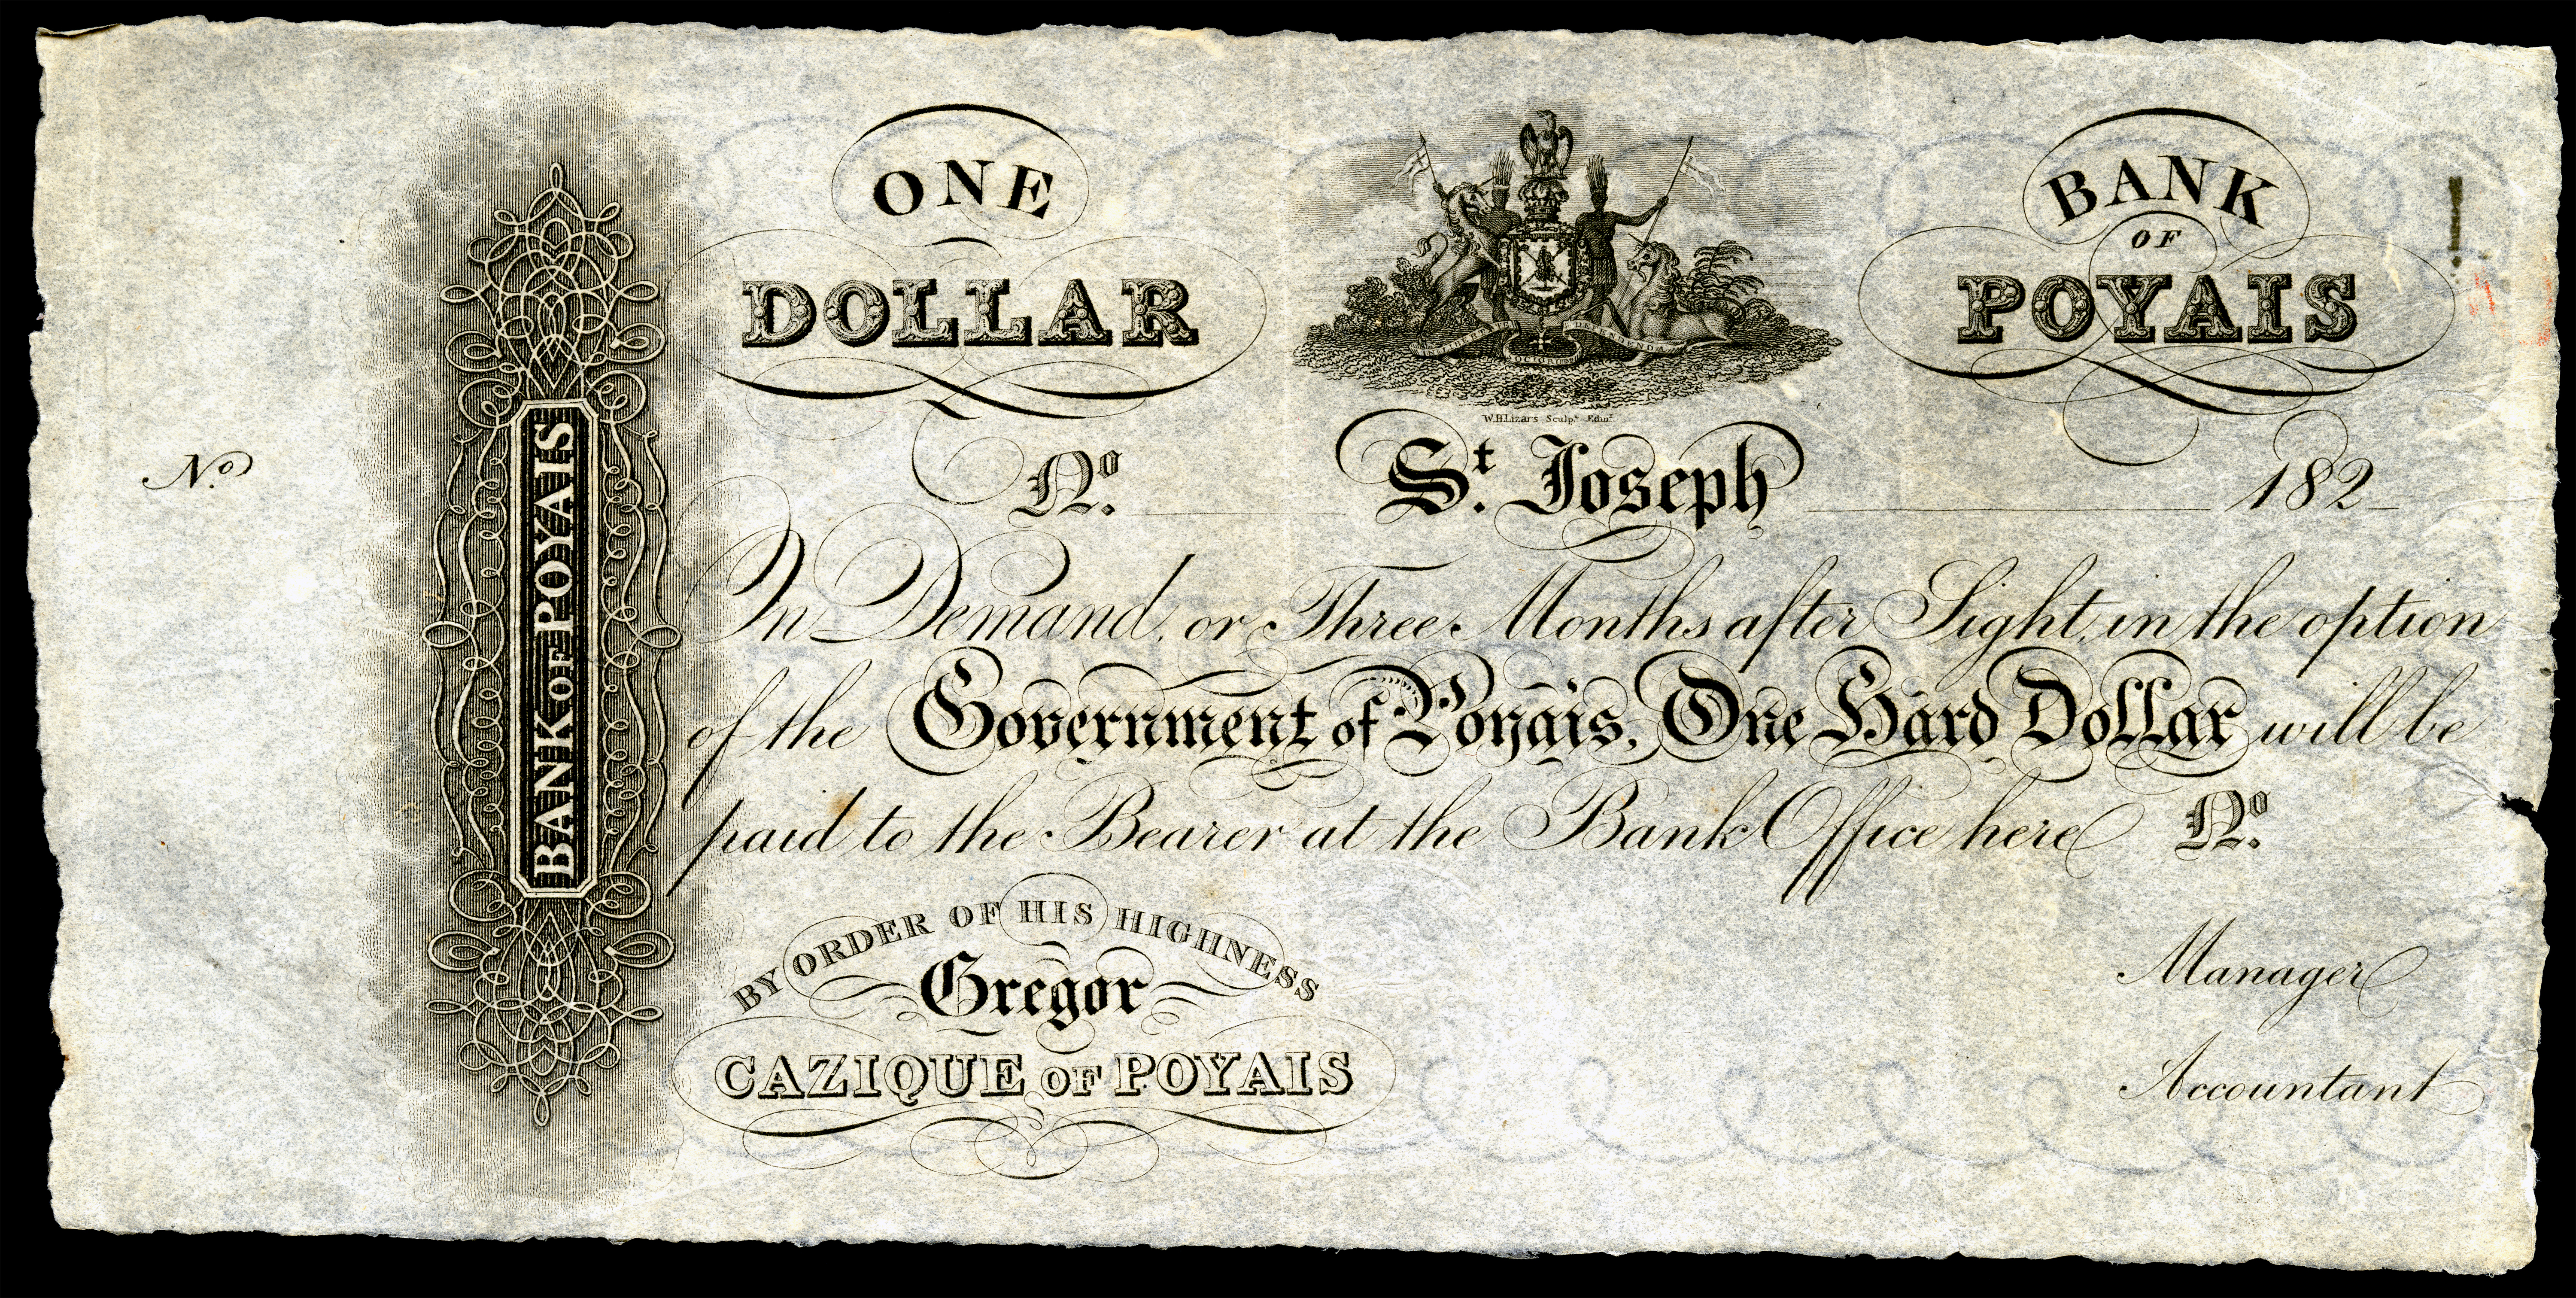 Fake currency that MacGregor drafted for the Bank of Poyais. Photo from Wikimedia Commons.